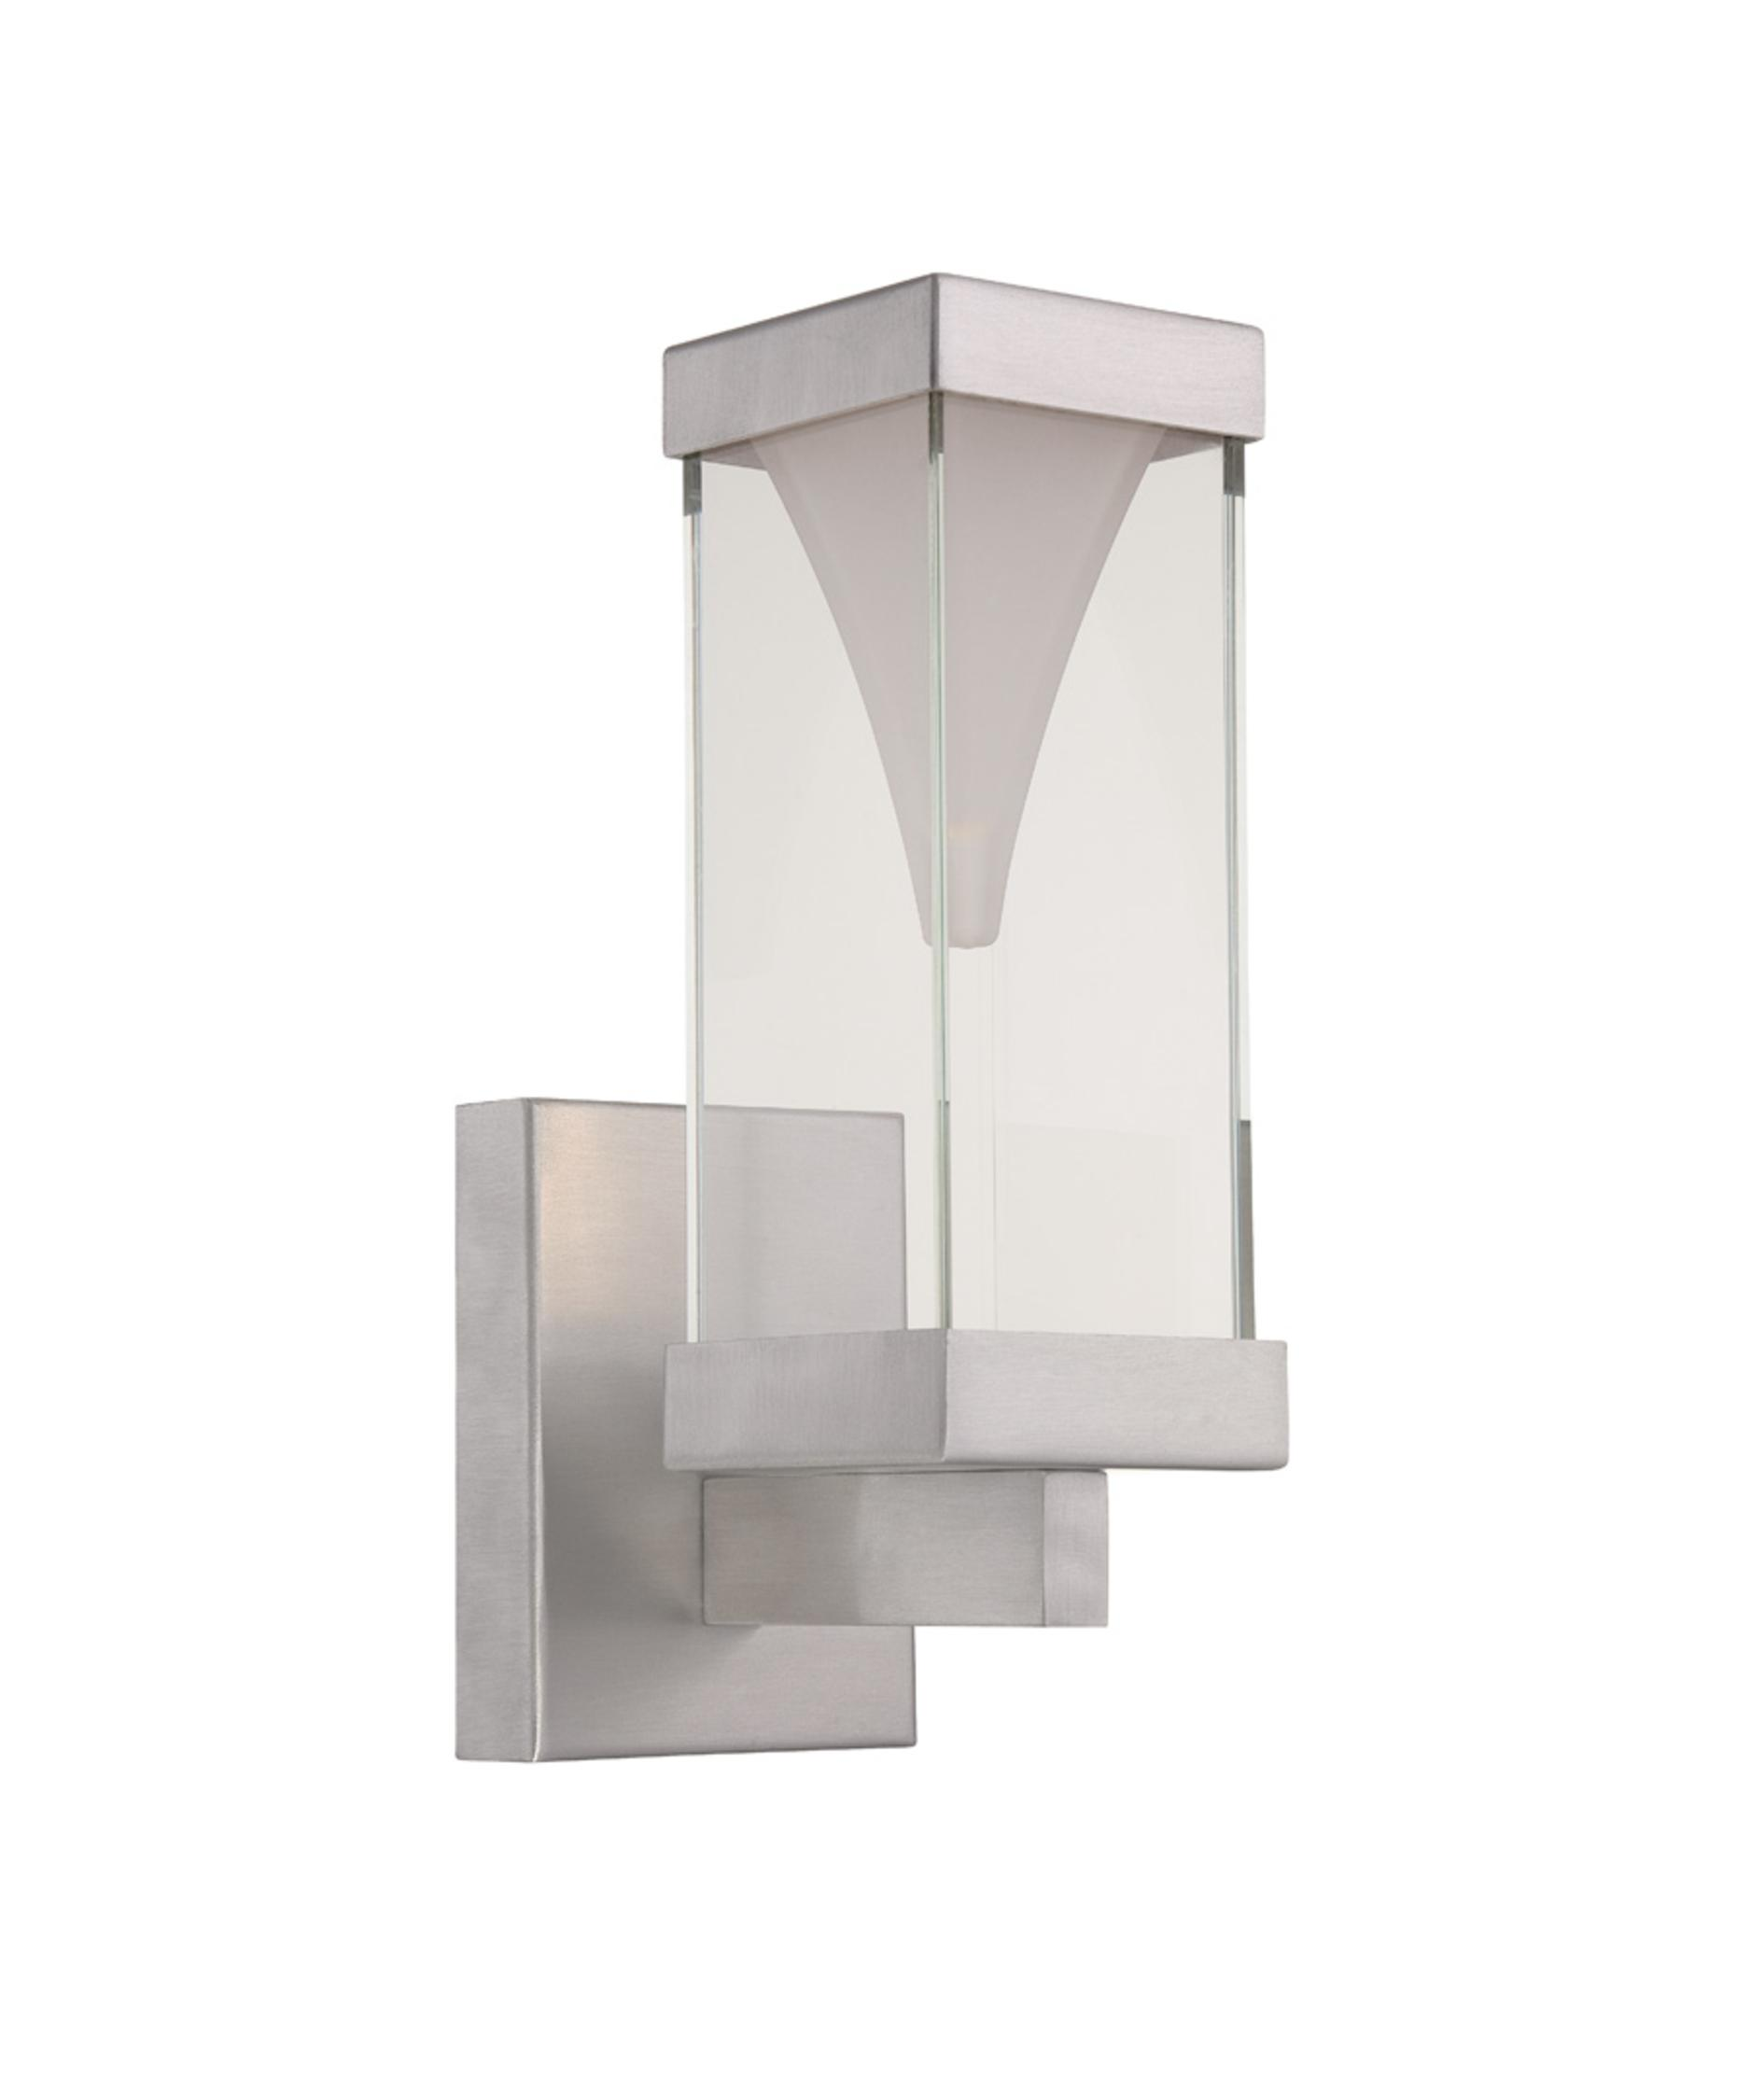 modern forms wsw2112 vortex 5 inch wide 1 light outdoor wall light capitol lighting - Modern Forms Lighting